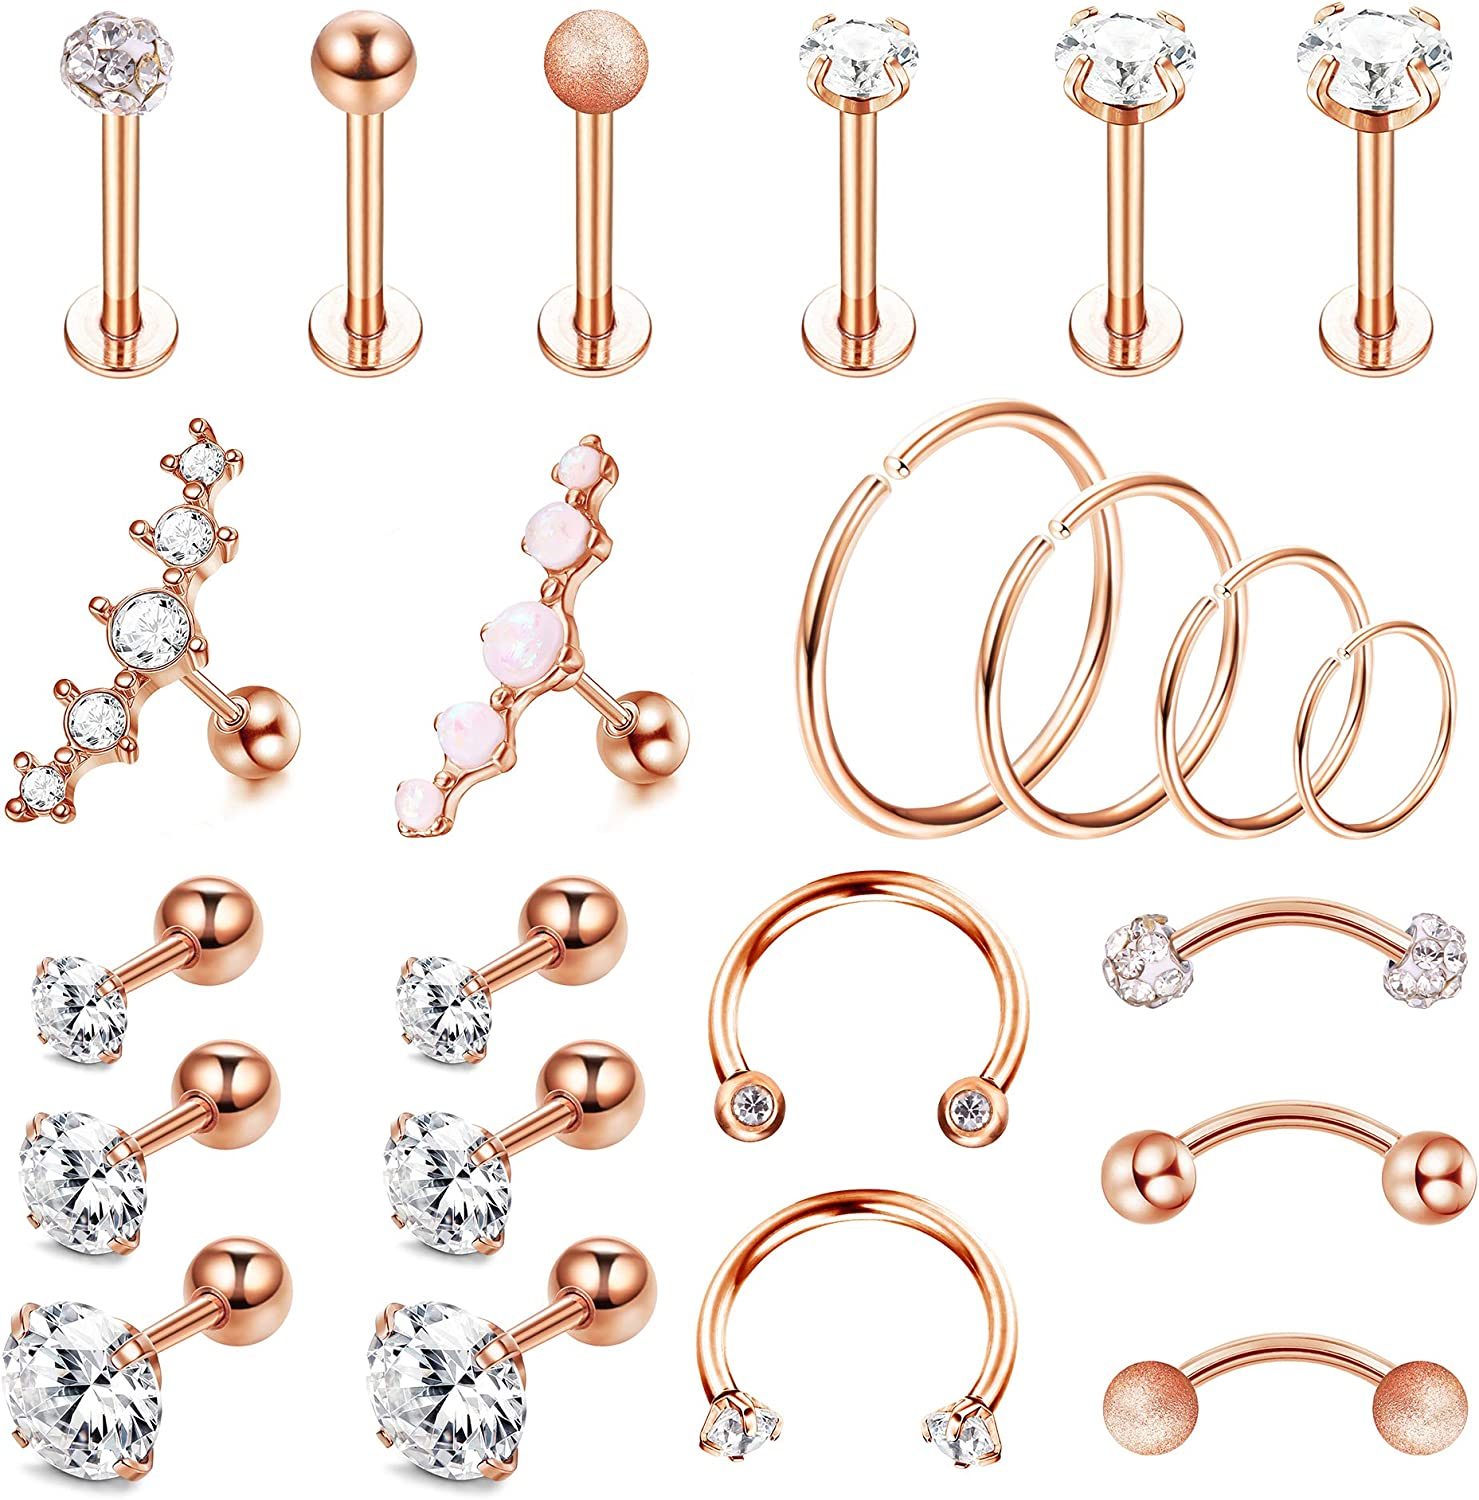 Drperfect 16G Cartilage Earring Hoop Stud for Women Forward Helix Rook Daith Conch Tragus Ear Piercing Jewelry